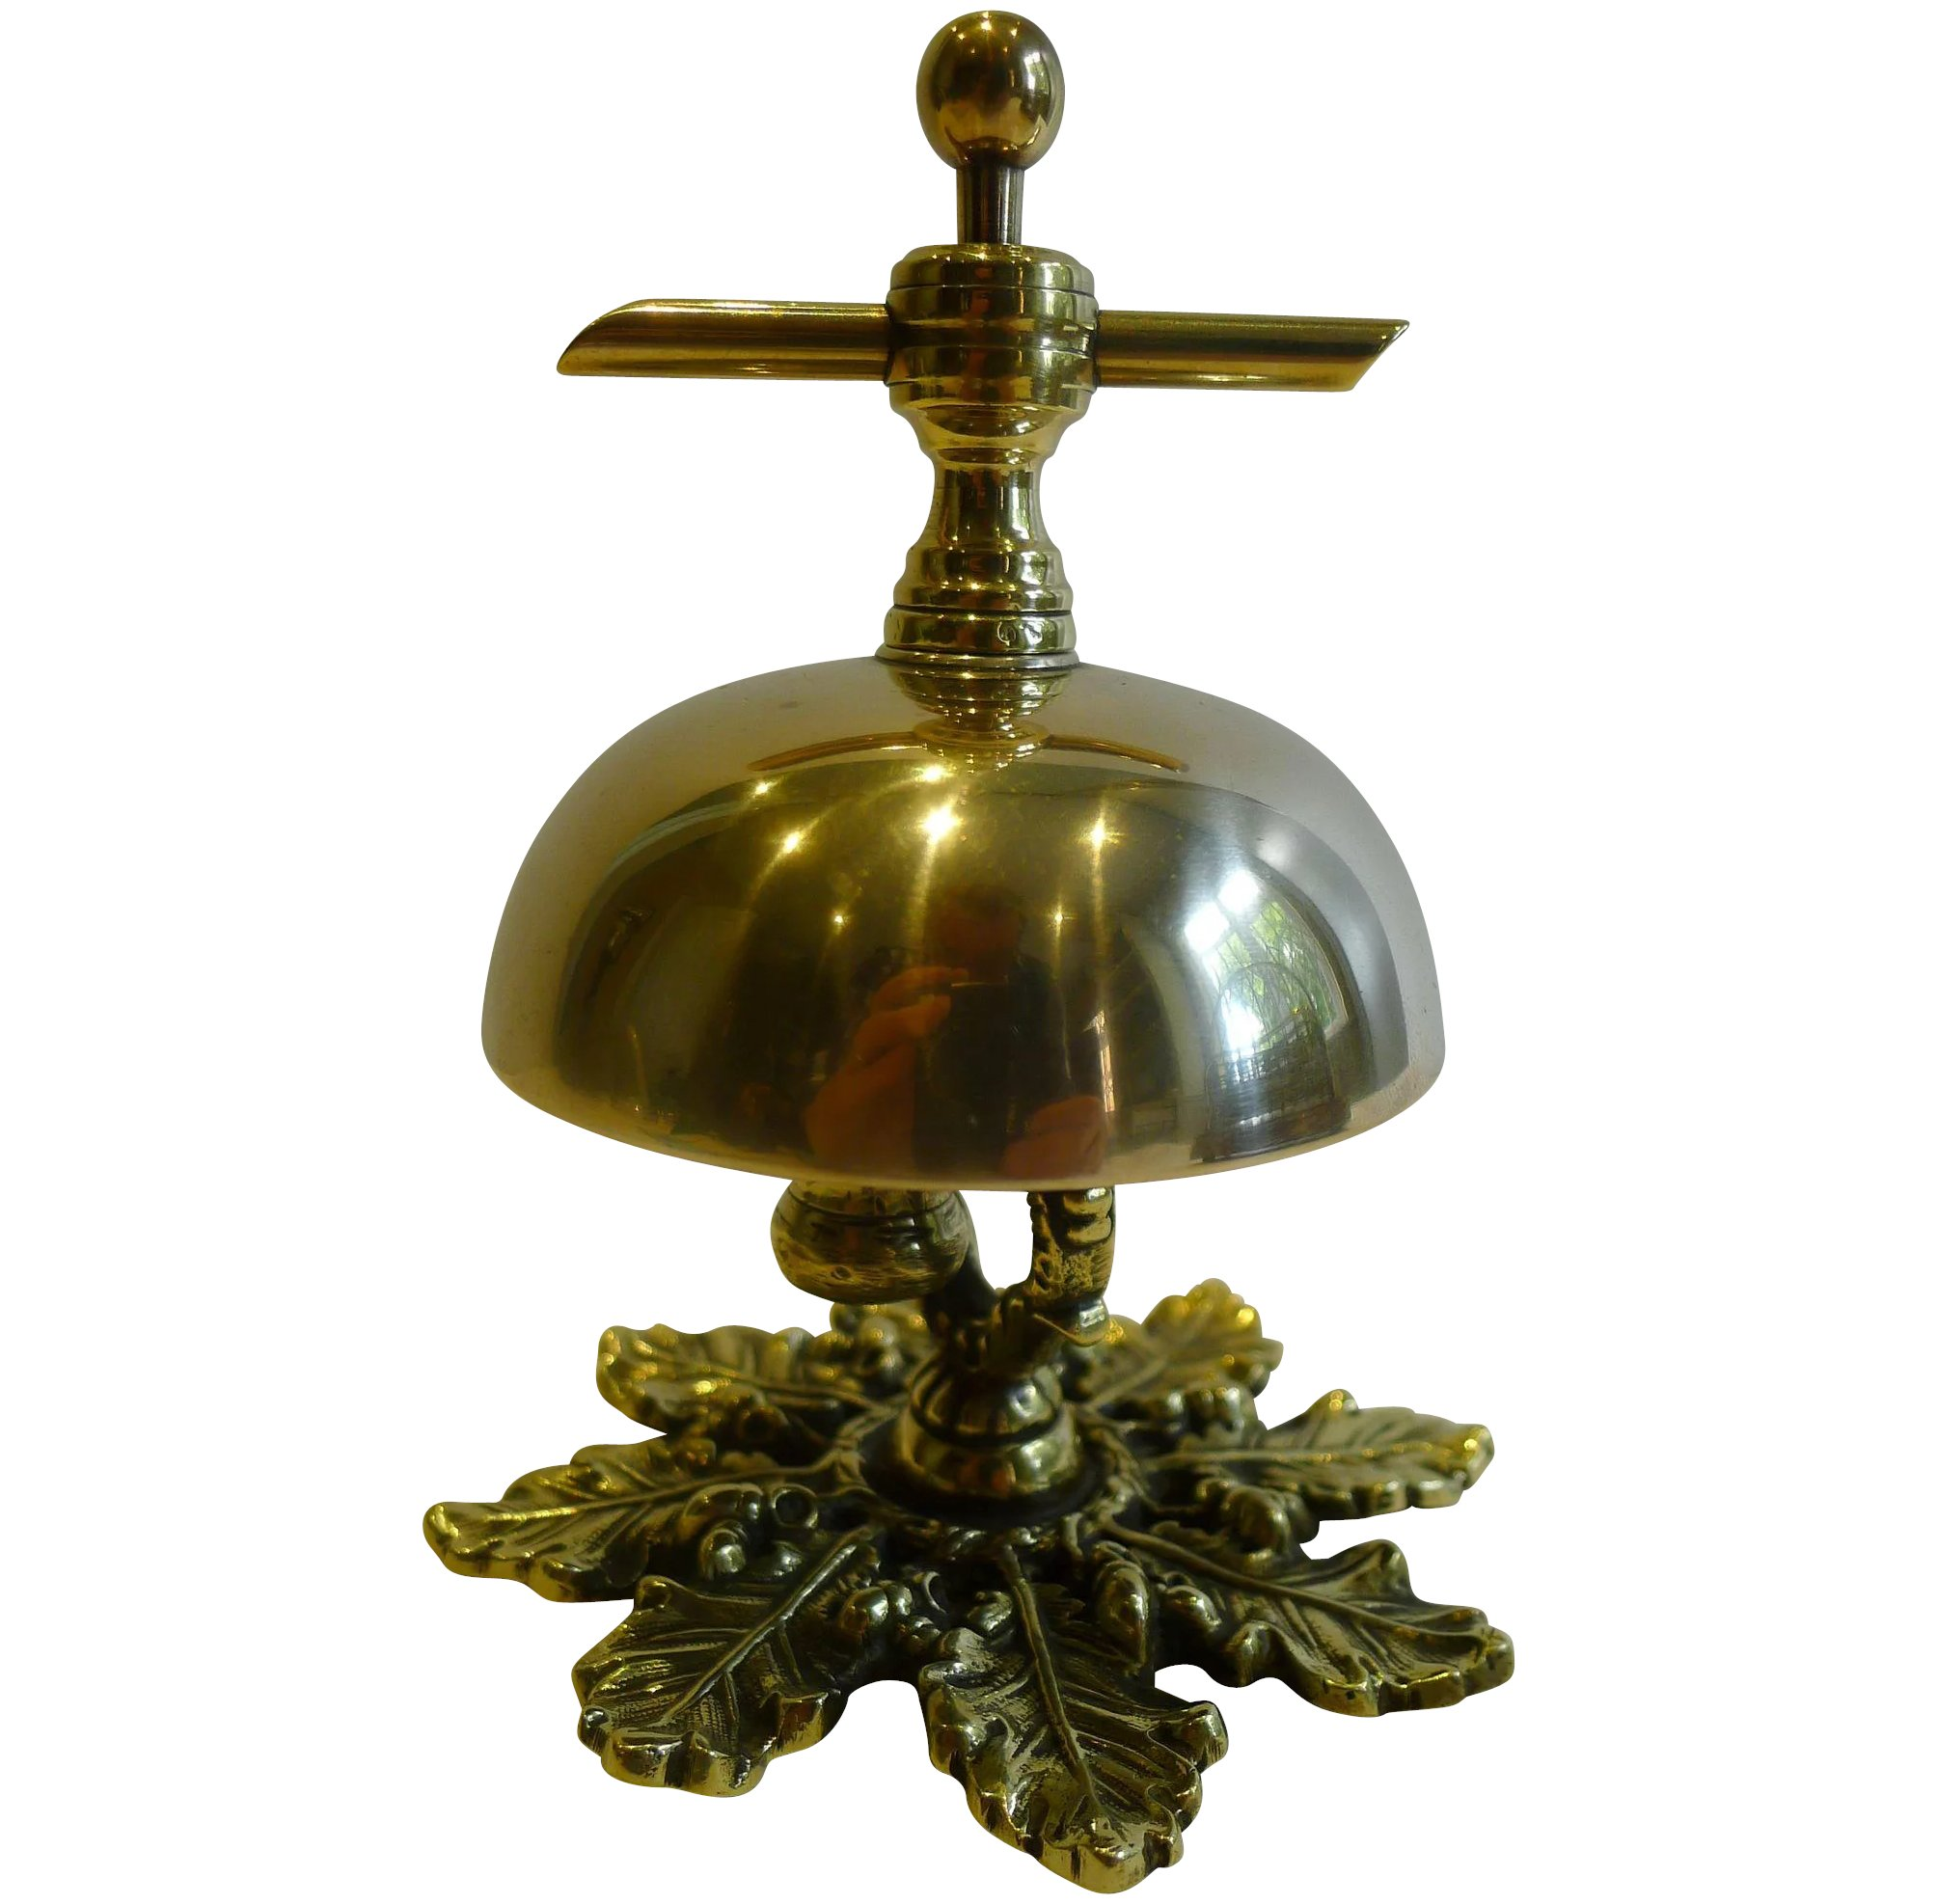 Antique English Brass Counter Desk Bell C 1880 To Expand